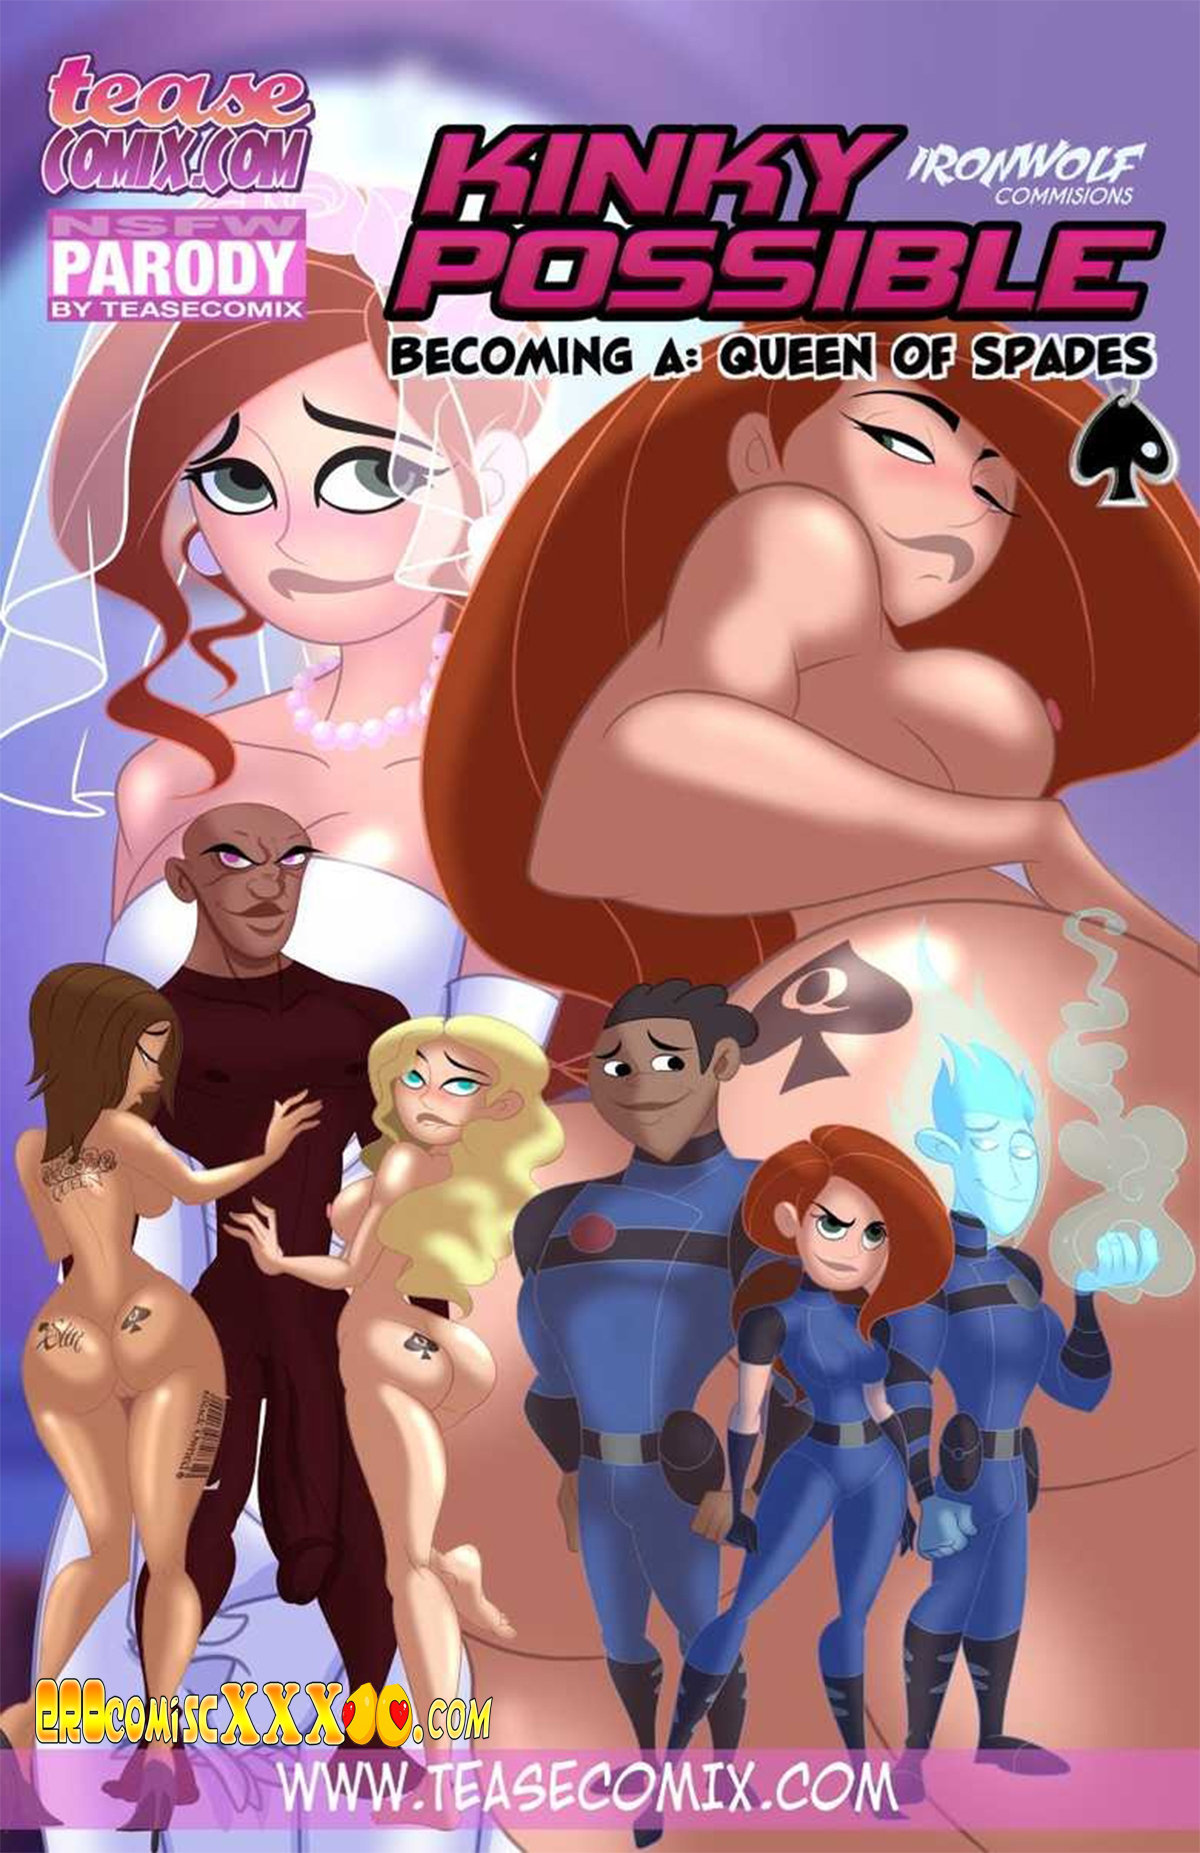 1 15 - Kinky Possible - Becoming A Queen Of Spades (Kim Possible) - Tease Comix.